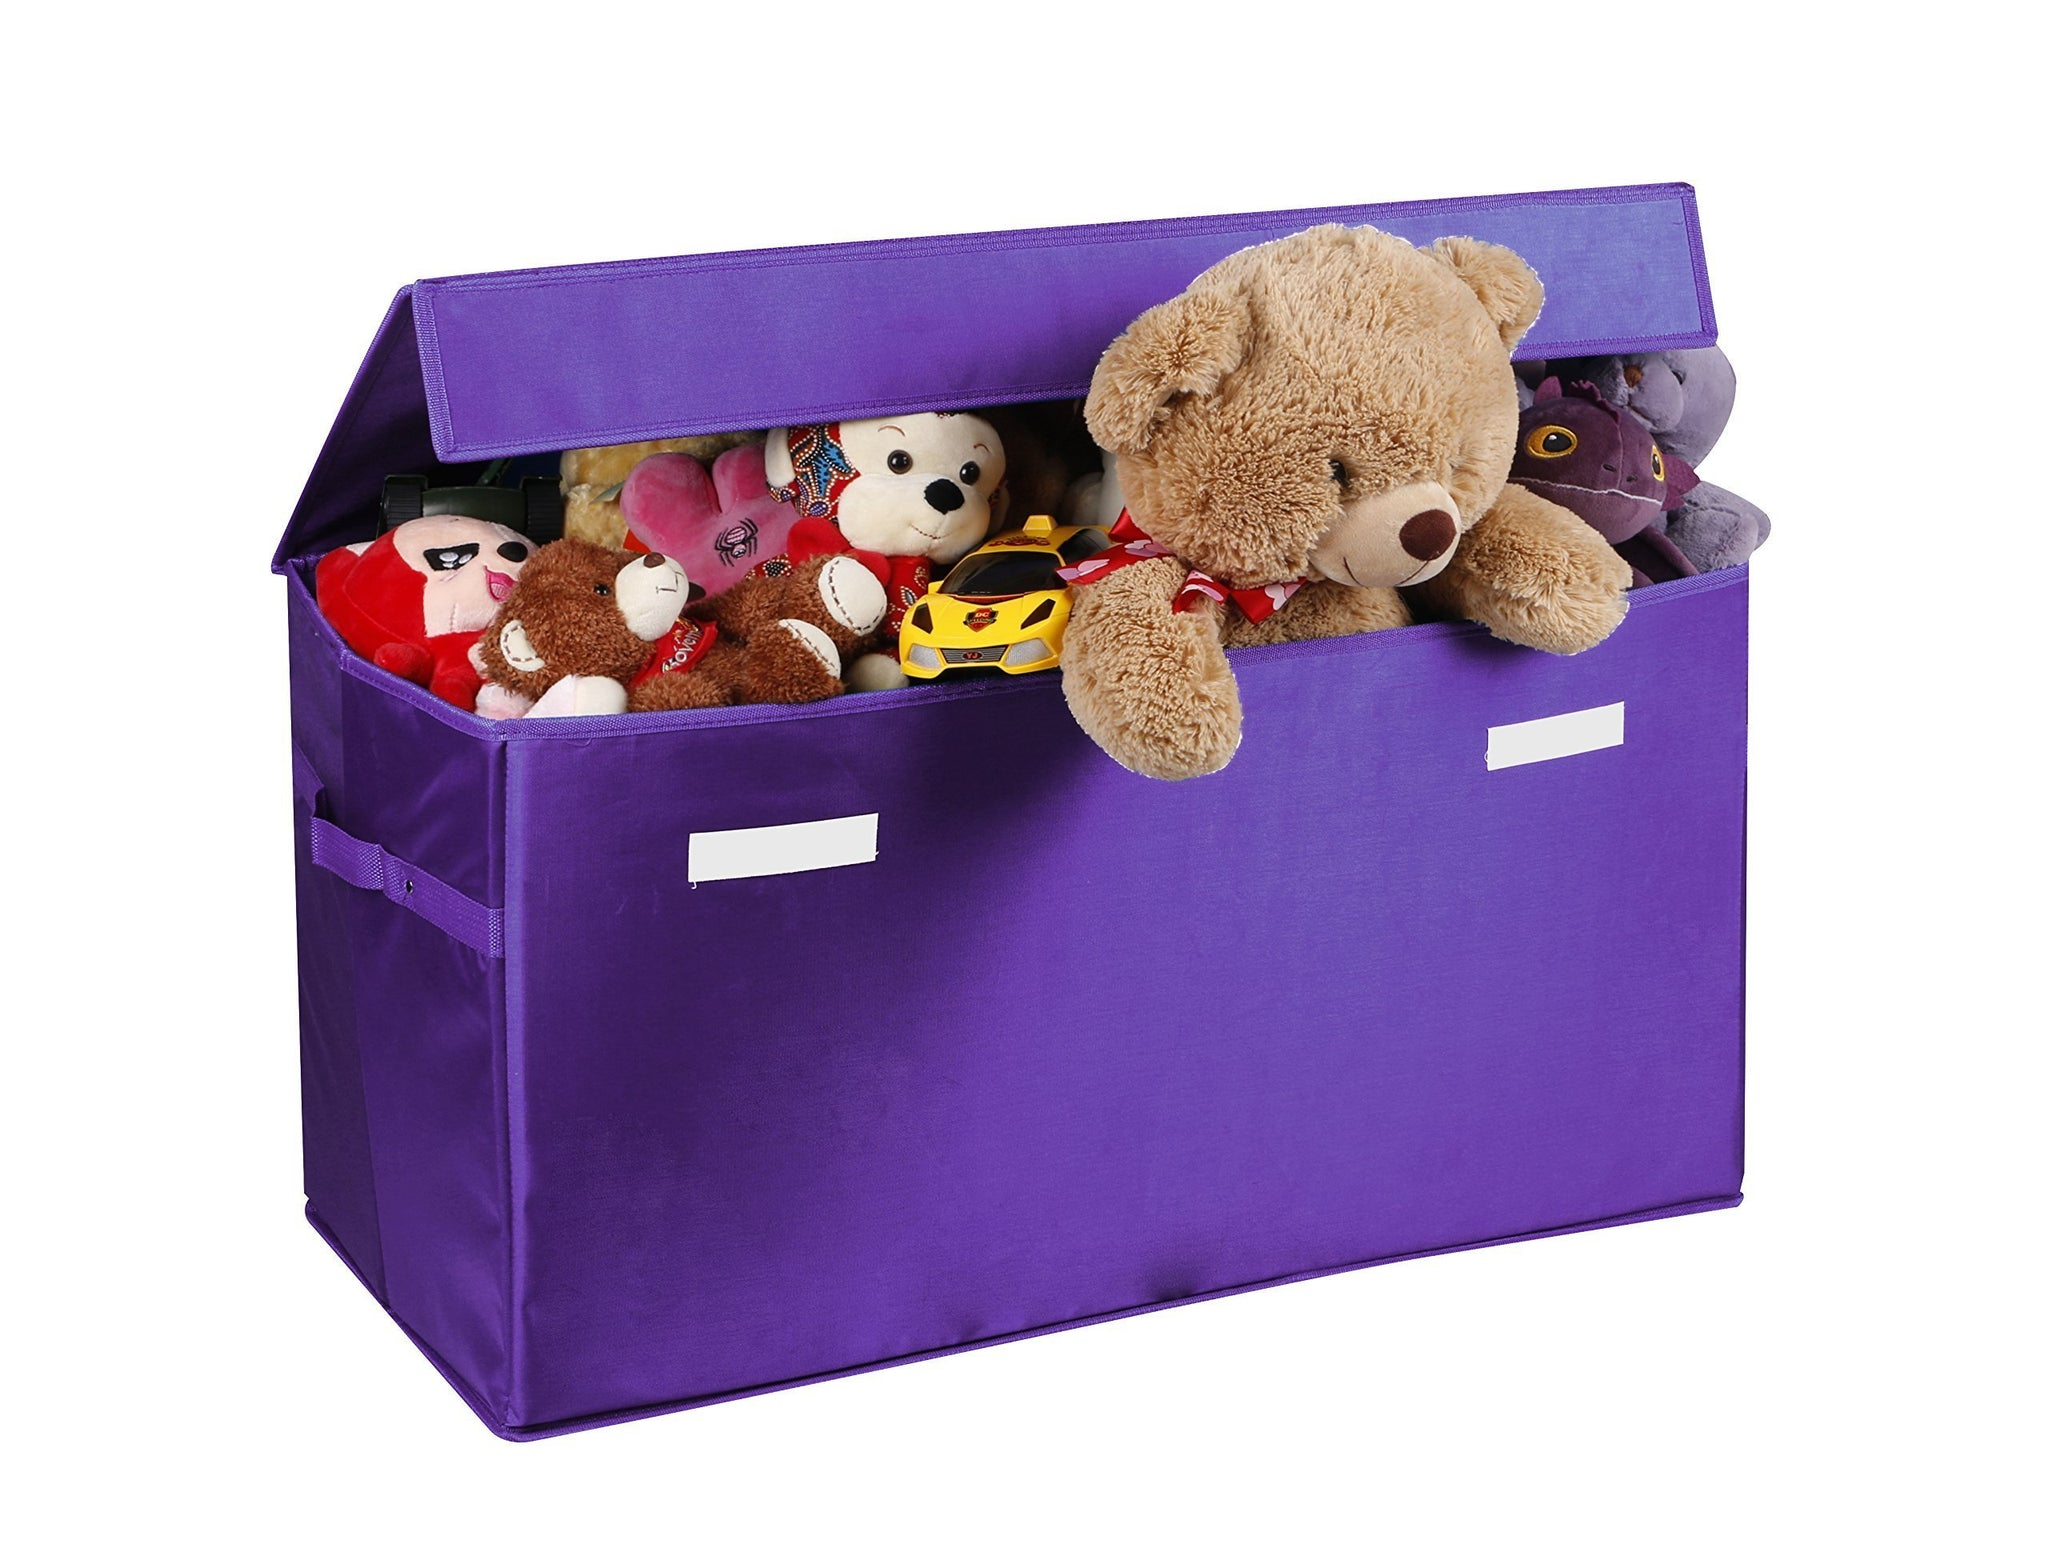 Related prorighty collapsible toy chest for kids xx large storage basket w flip top lid toys organizer bin for bedrooms closets child nursery store stuffed animals games clothes purple